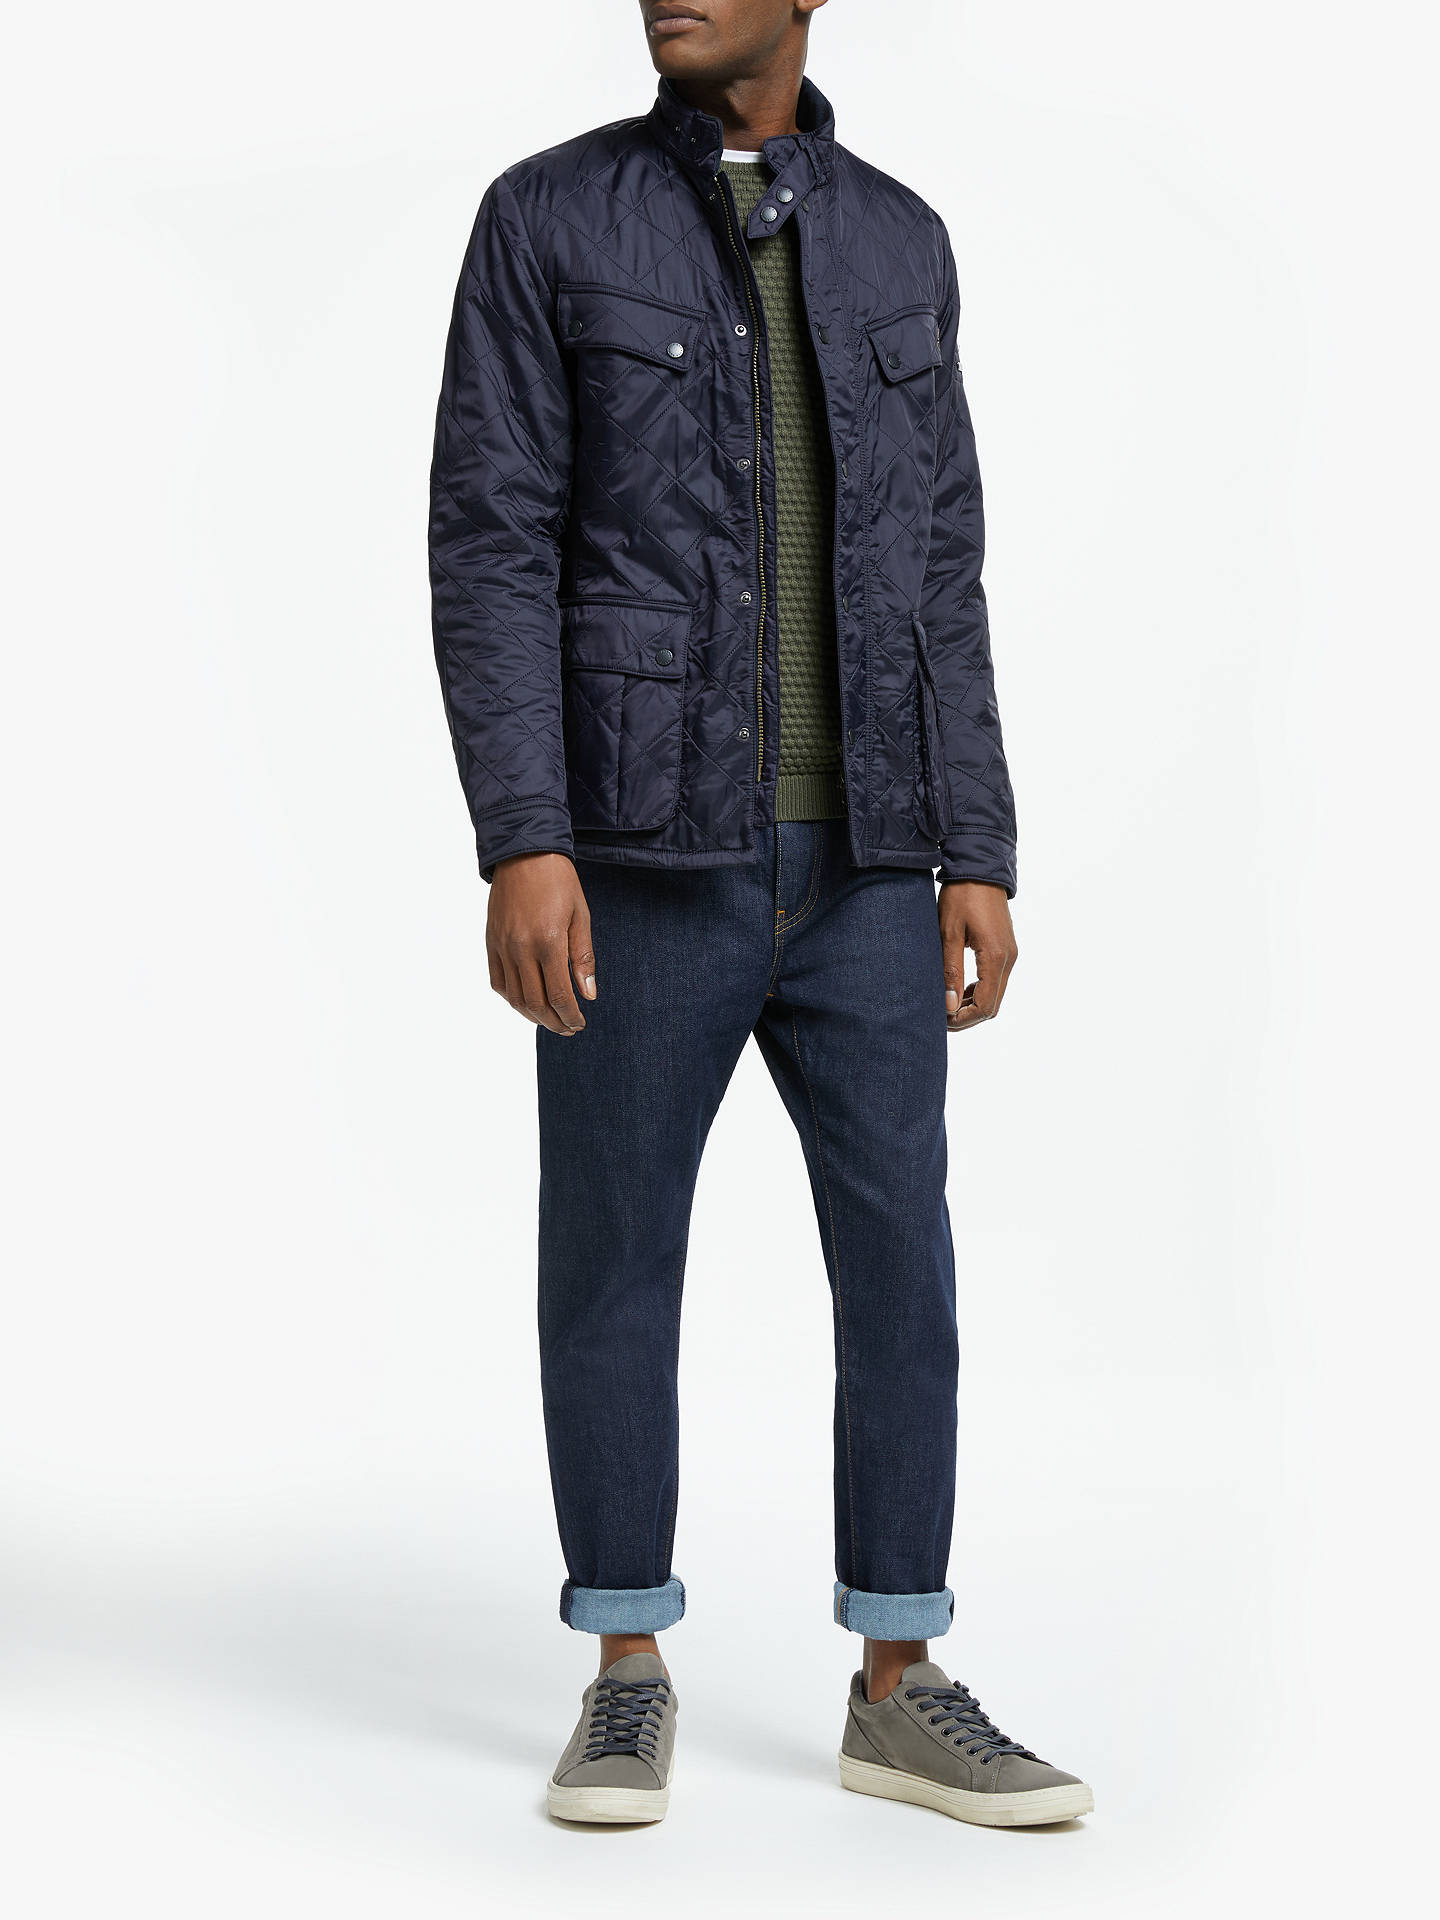 BuyBarbour International Ariel Polarquilt Quilted Jacket, Navy, M Online at johnlewis.com